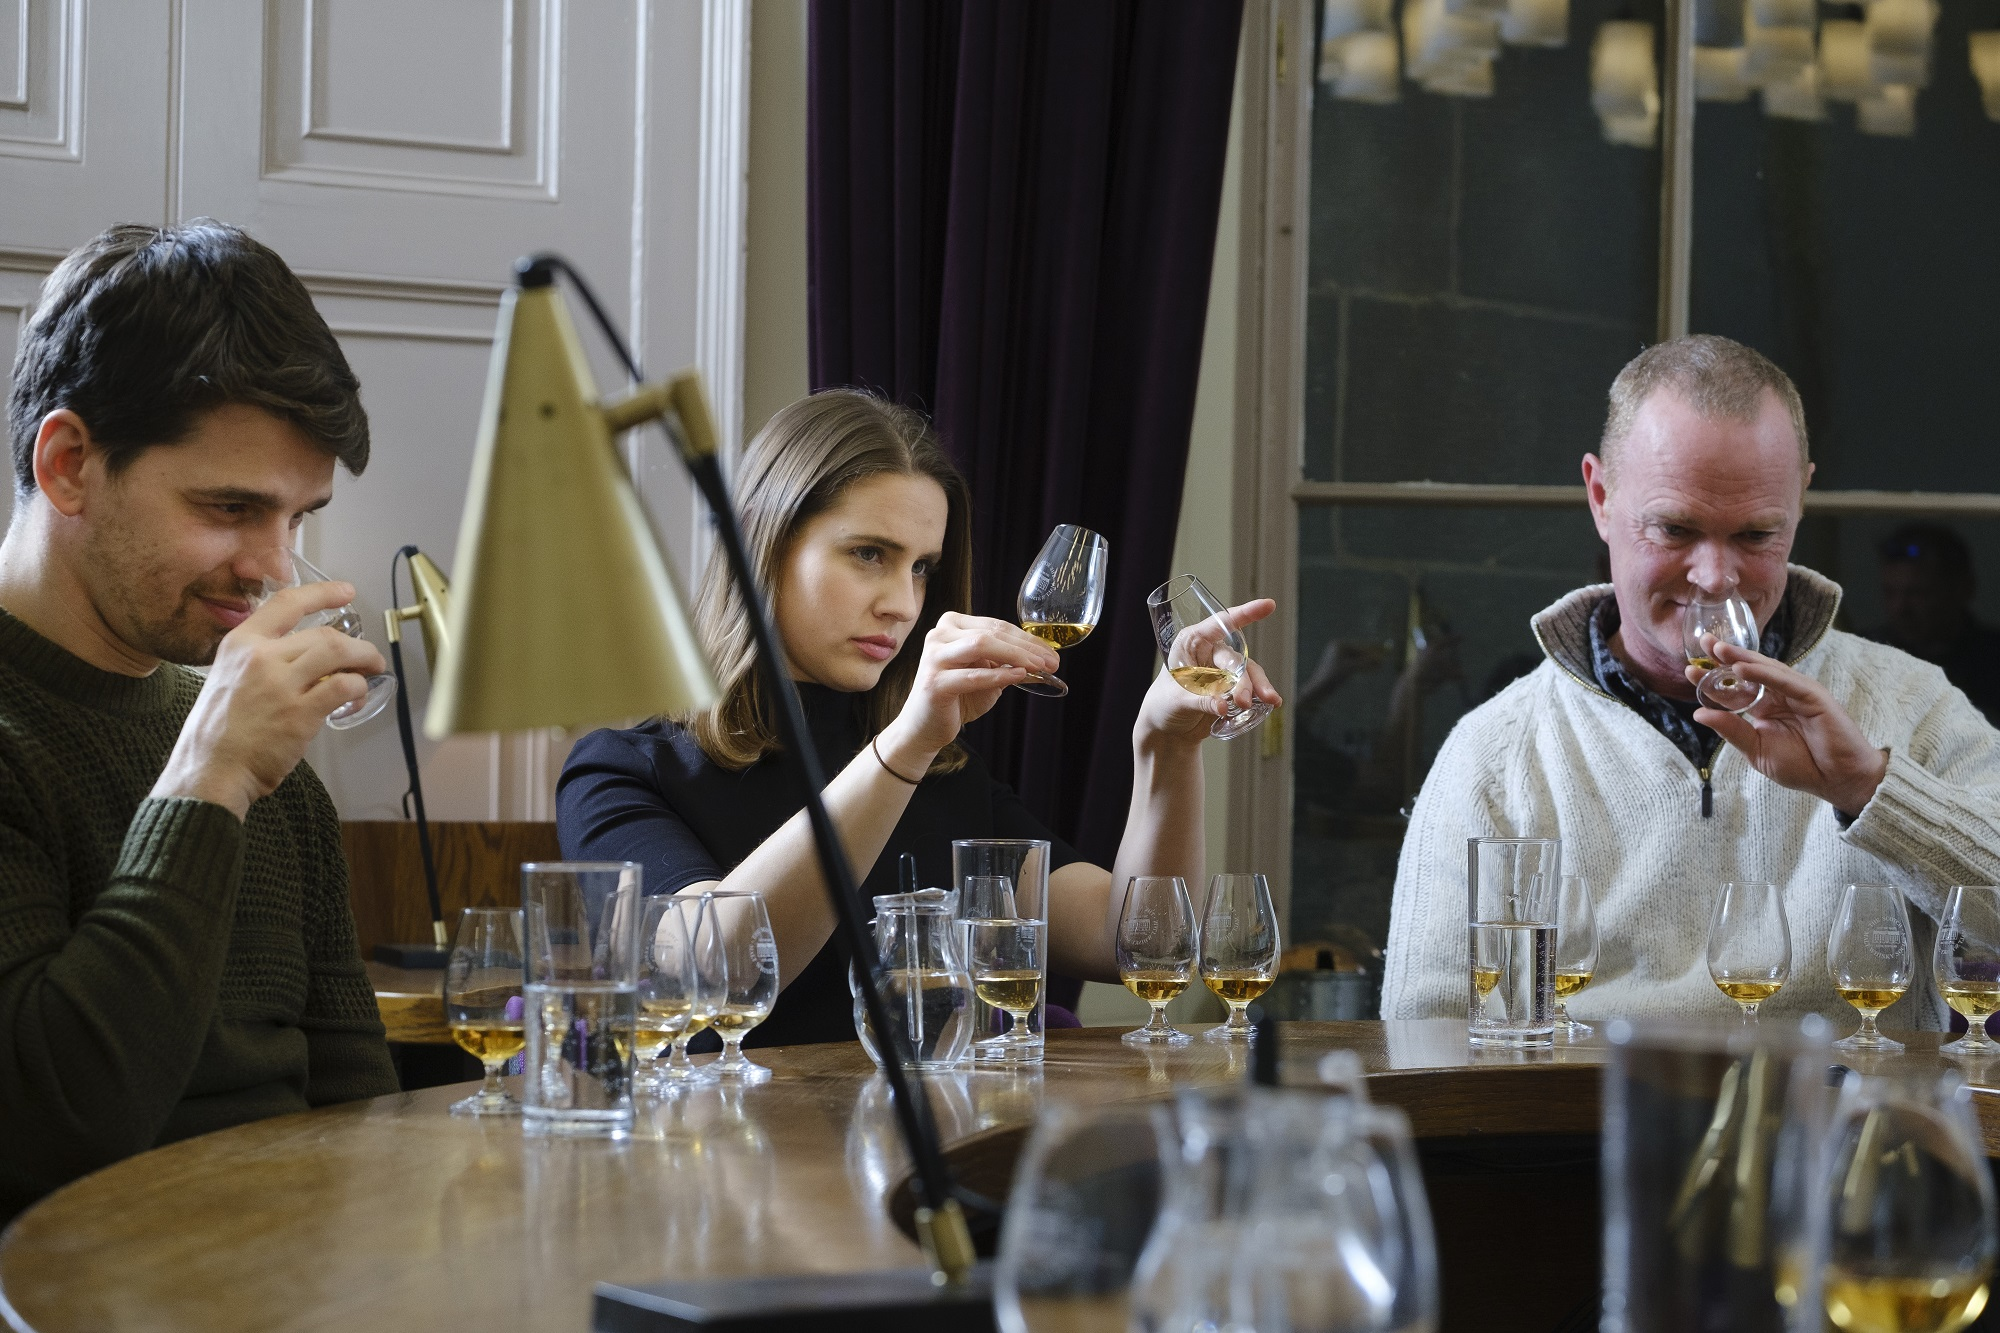 Belong to the world's most colourful whisky club